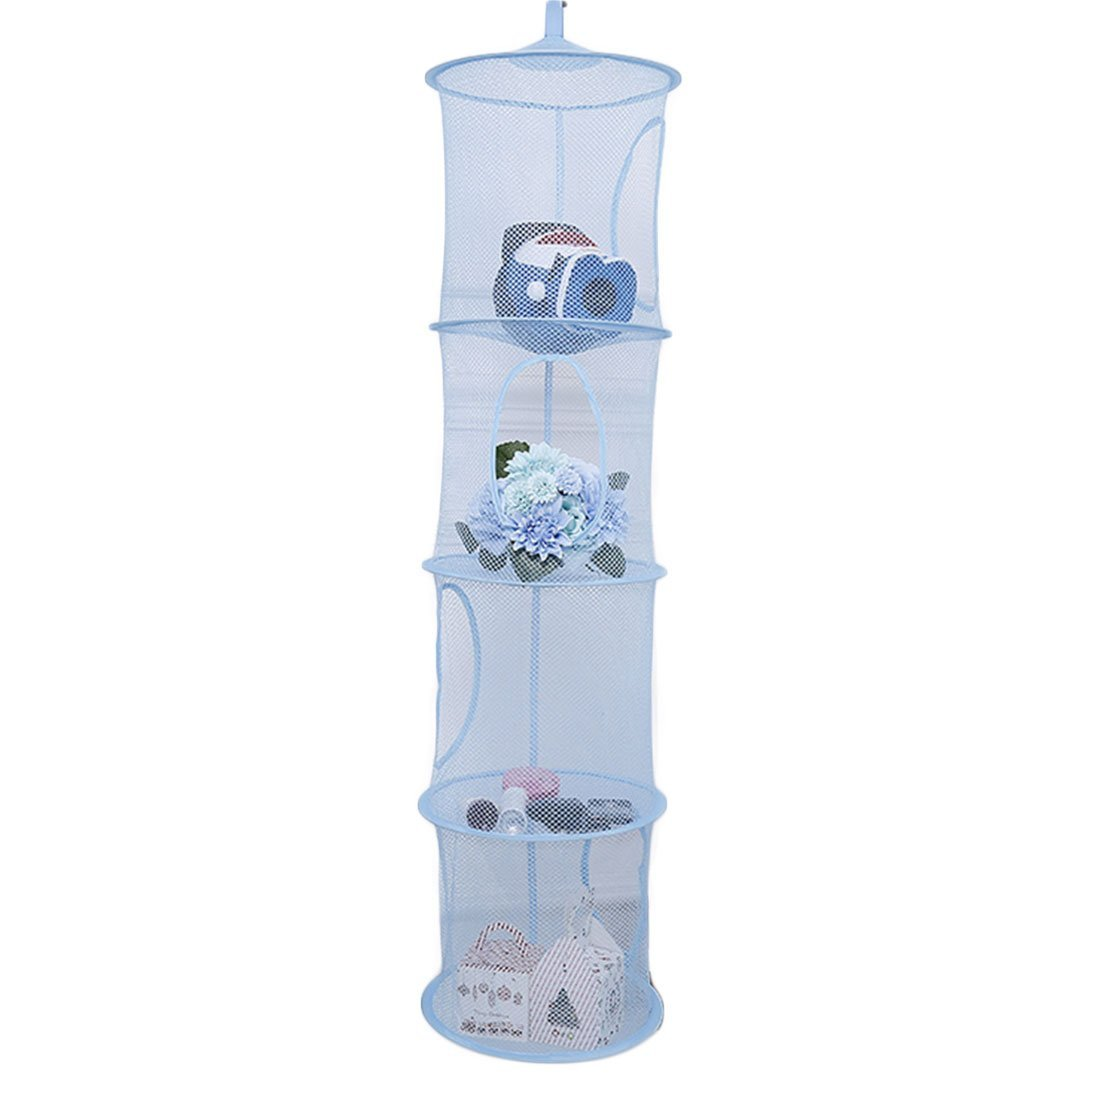 mingcheng 4 Tier Foldable Hanging Basket Cloth Mesh Toy Storage Net Bag - Blue